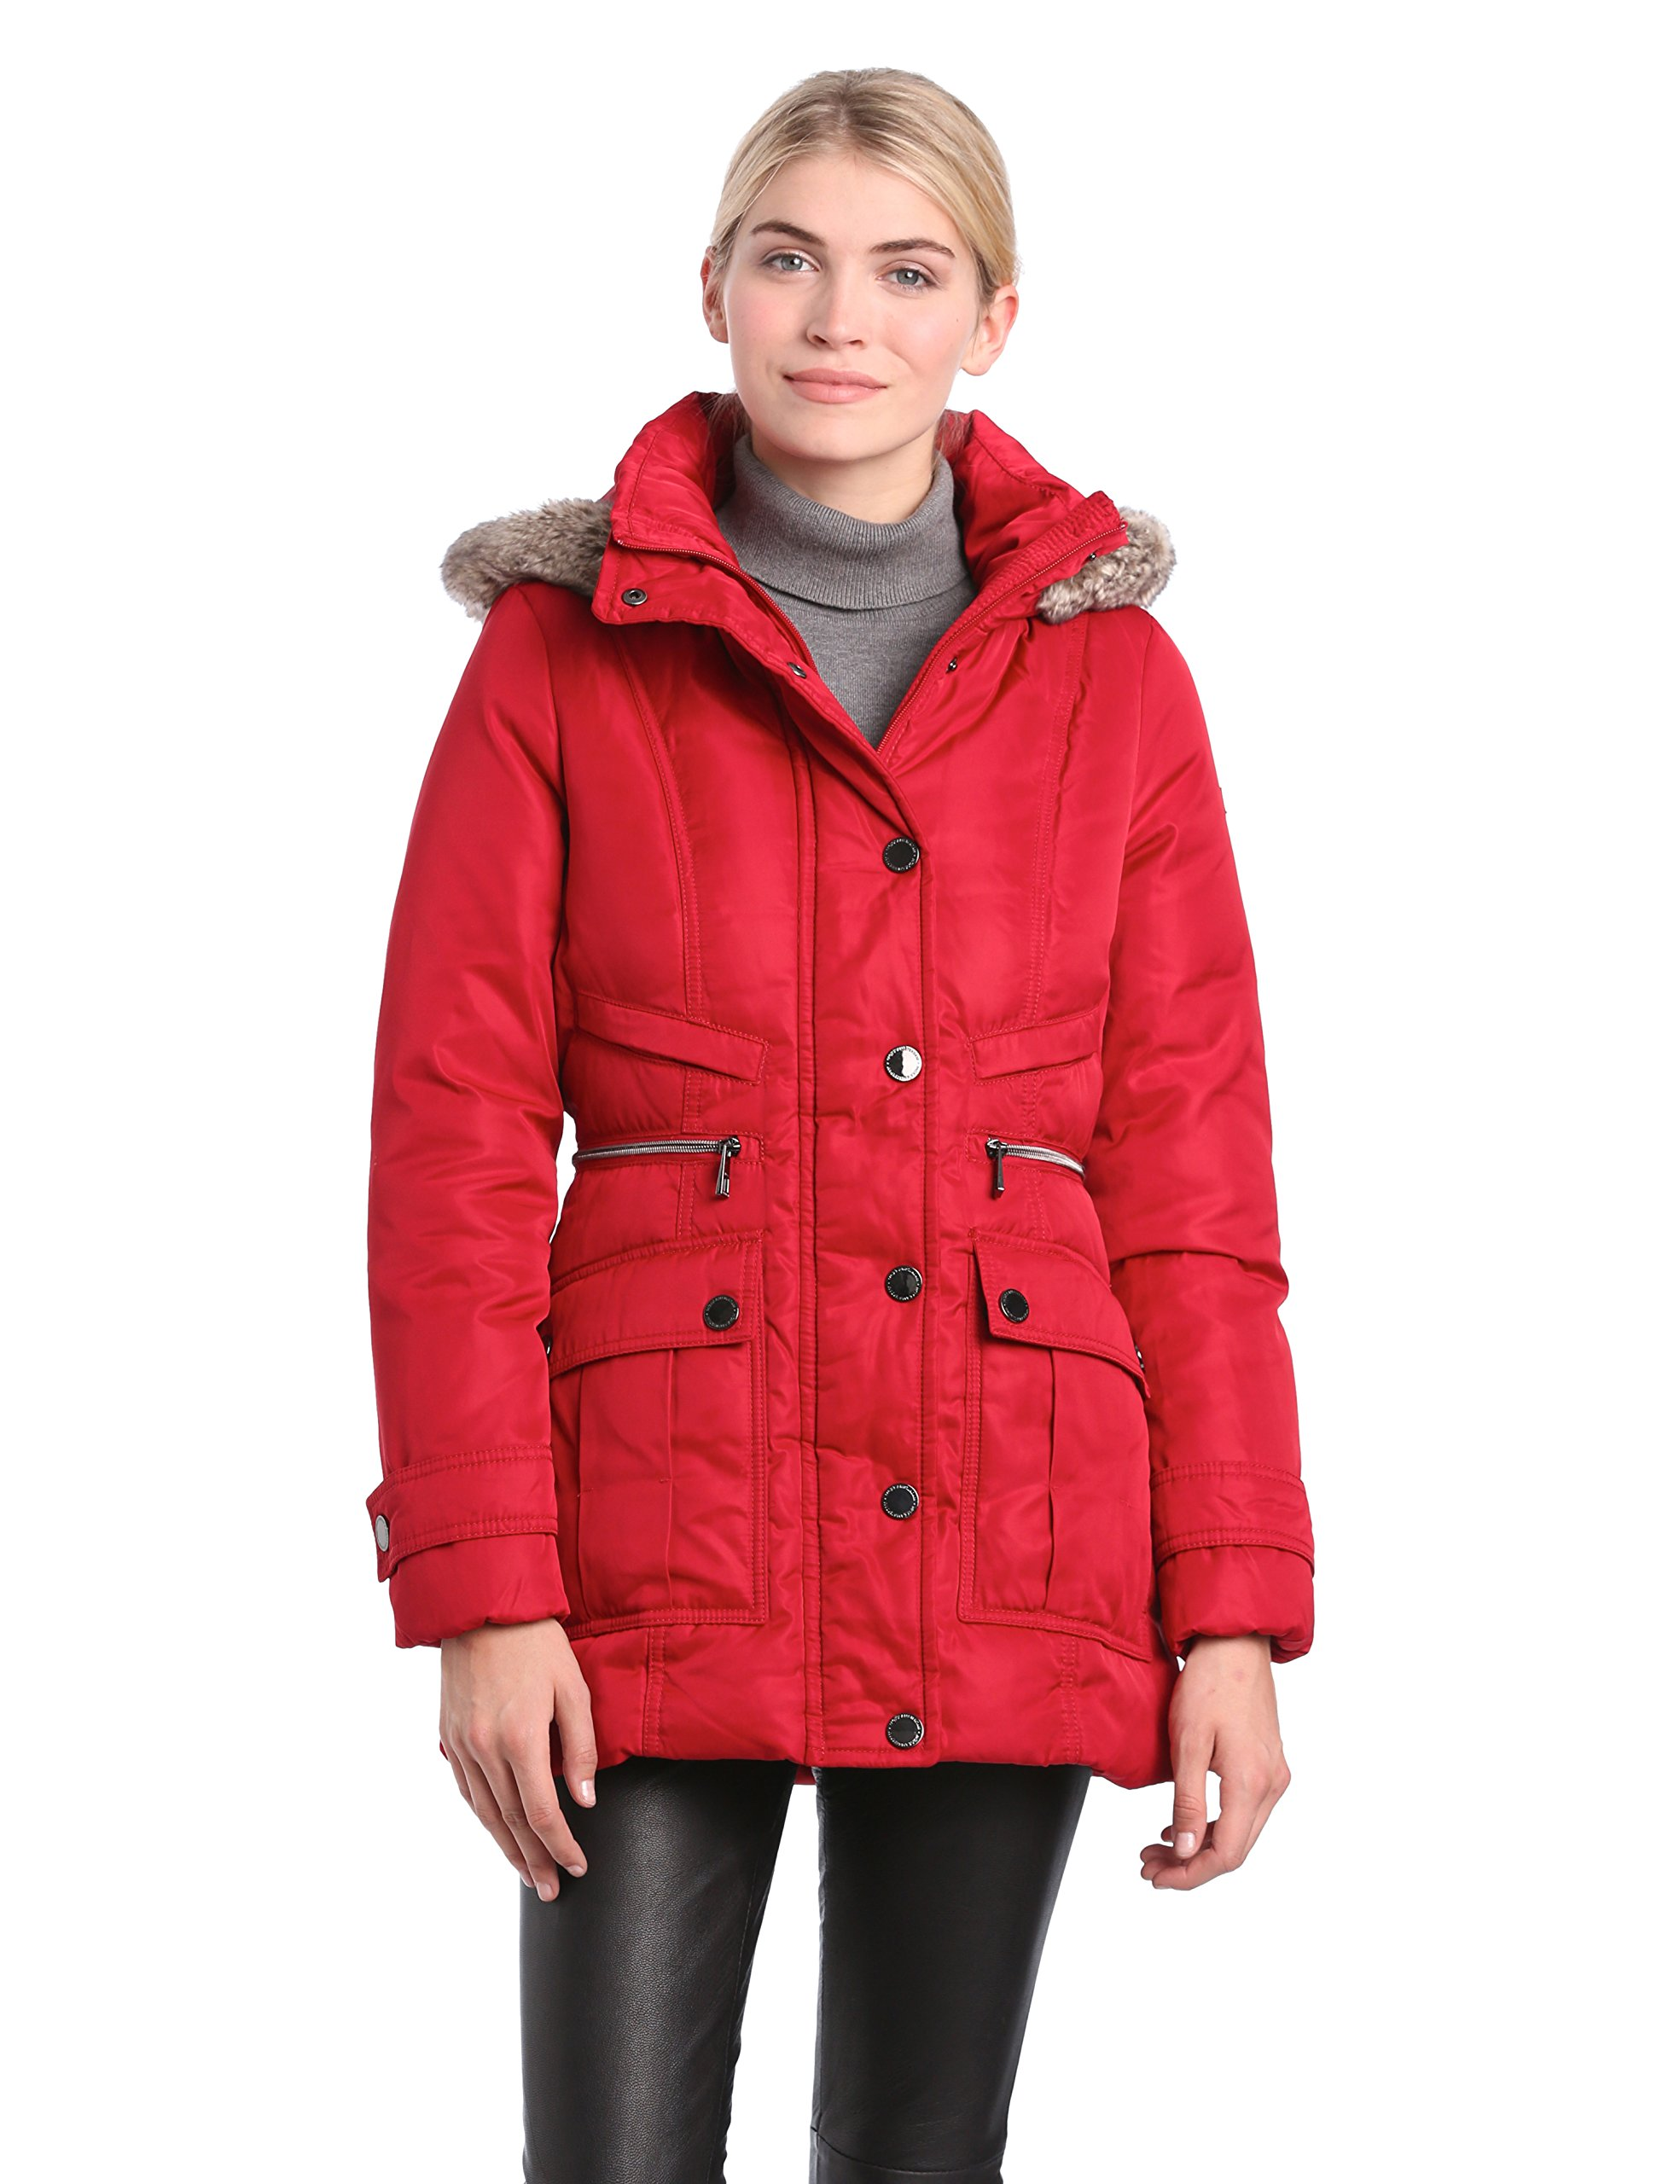 Fabricant40Femme Mexx RedFr42taille Fabricant40Femme ManteauRougesiren ManteauRougesiren Outerwear Outerwear RedFr42taille Mexx fgm76YyvIb